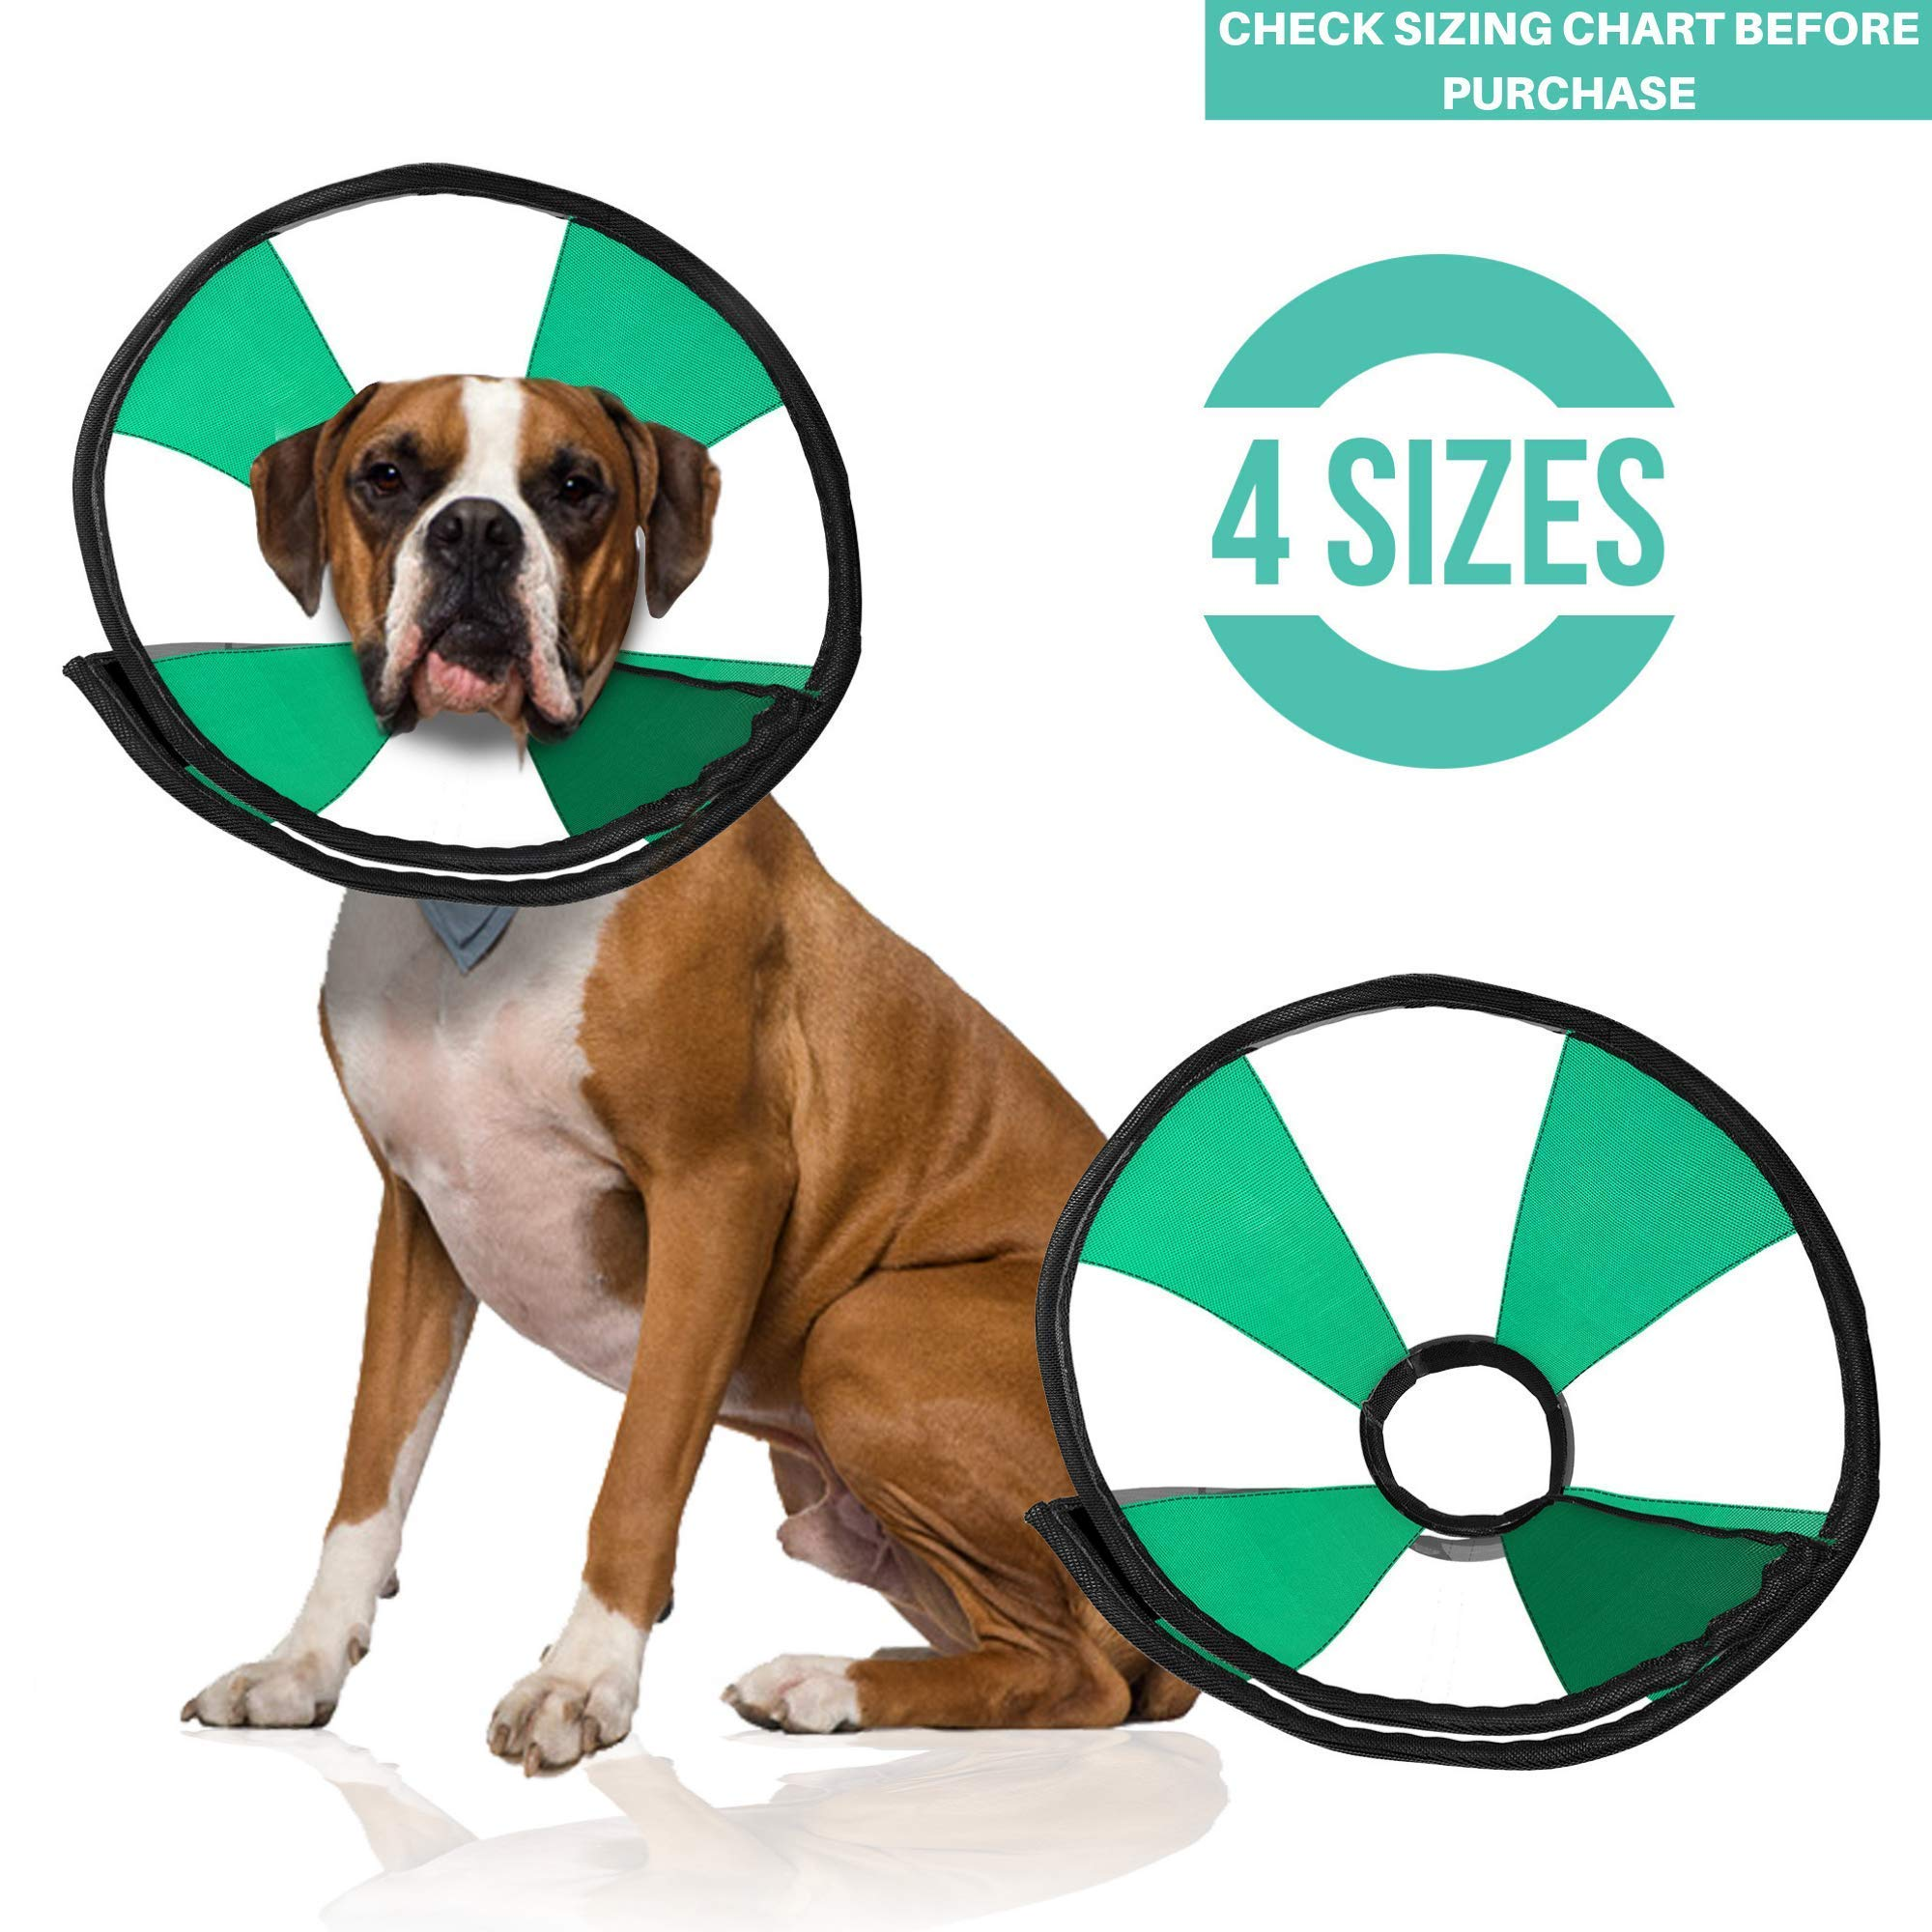 ProCollar Pet Recovery Cone E-Collar for Dogs and Cats - Comfortable Soft Collar is Adjustable for a Secure and Custom Fit - Easy for Pets to Eat and Drink - Works with Your Pet's Collar (Medium) by ProCollar